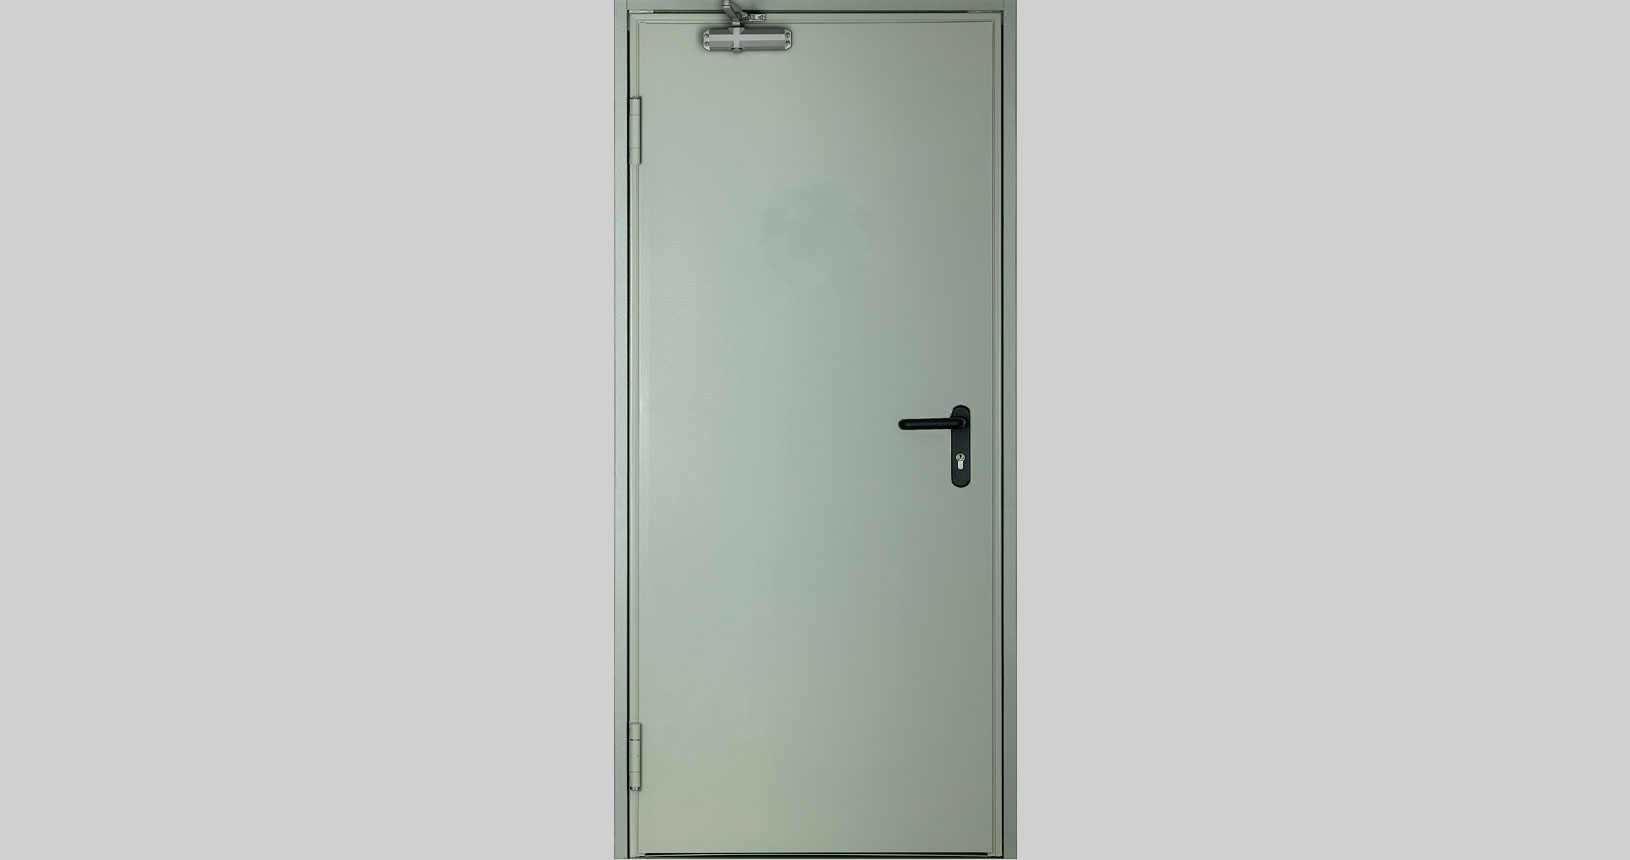 Firestop Security doors